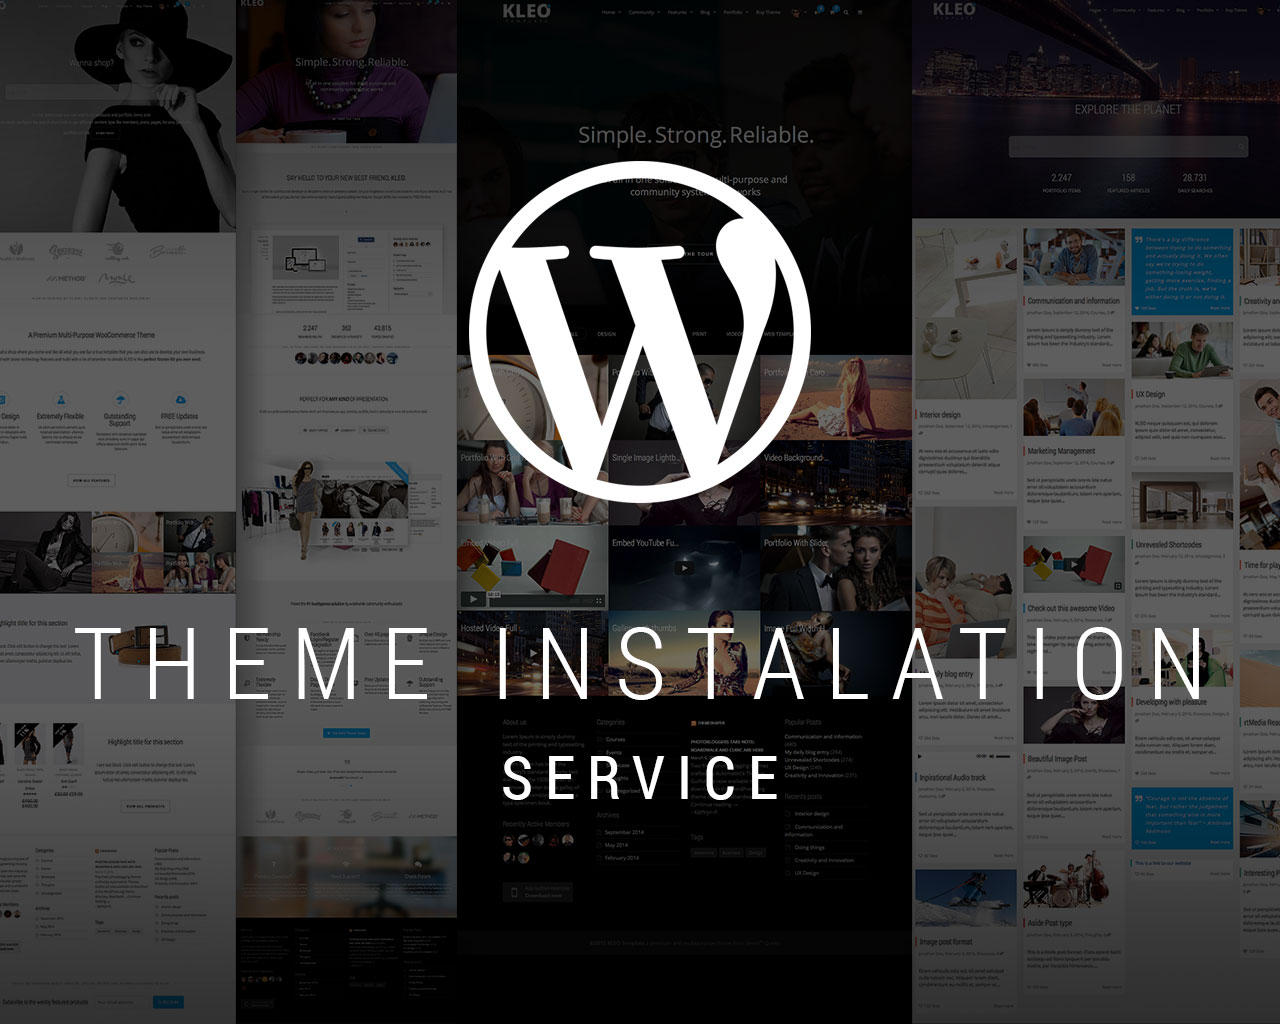 WordPress Theme Installation + Demo content + Plugins (just like theme demo) by SeventhQueen - 76910